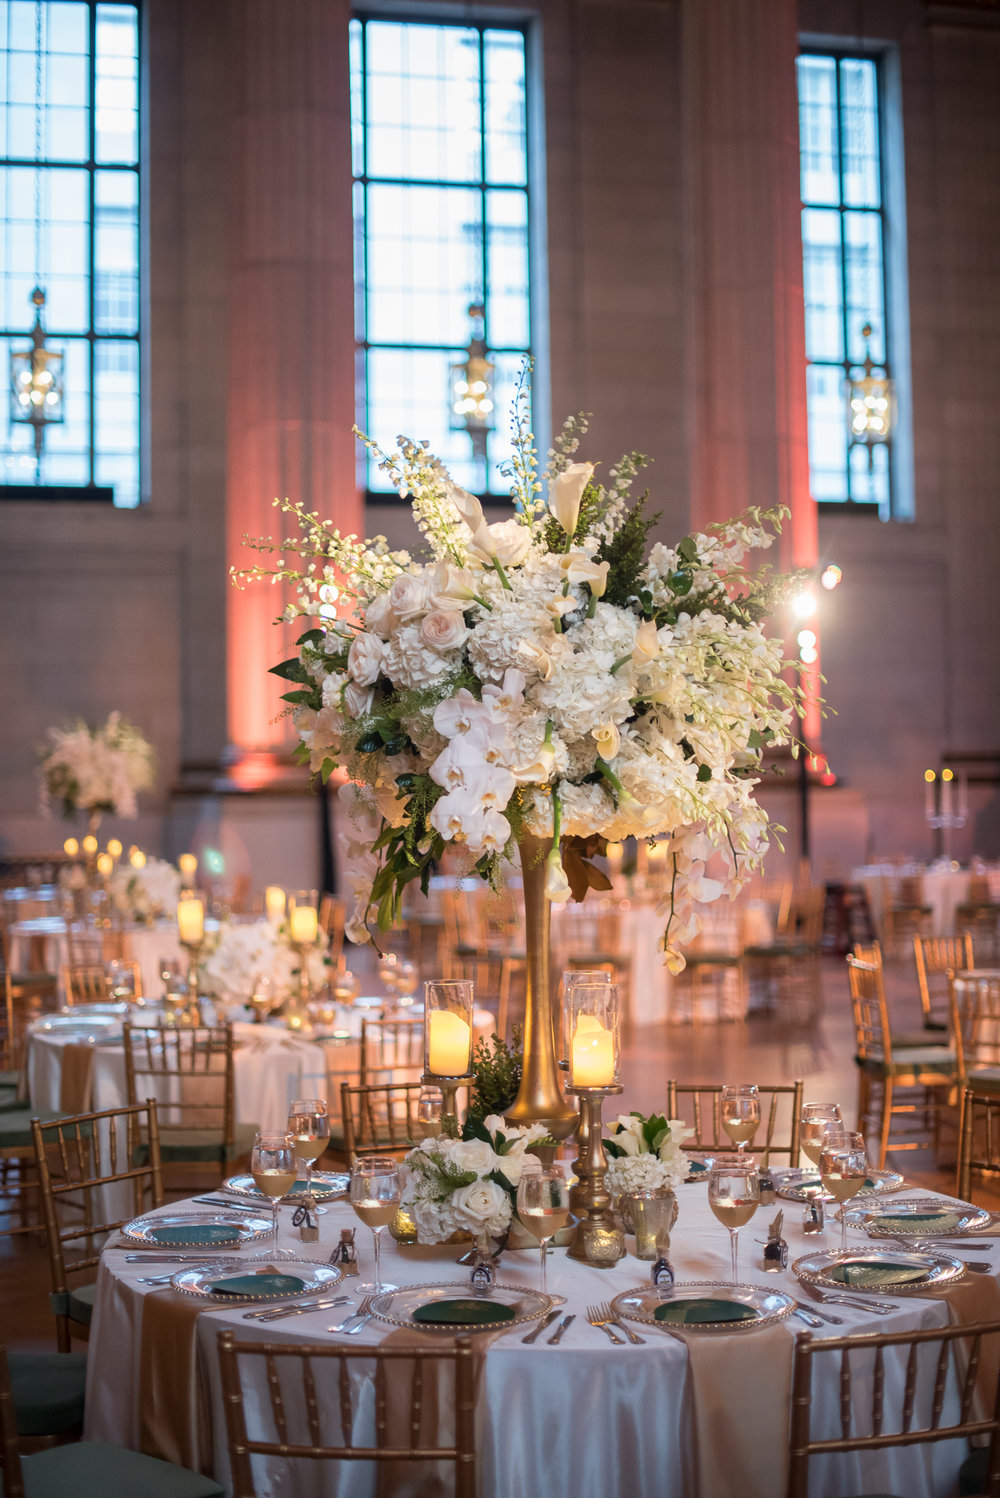 Wedding Tall Centerpiece Andrew Mellon DC Luxury Wedding Planner A Beyoutiful Fete Events and Design